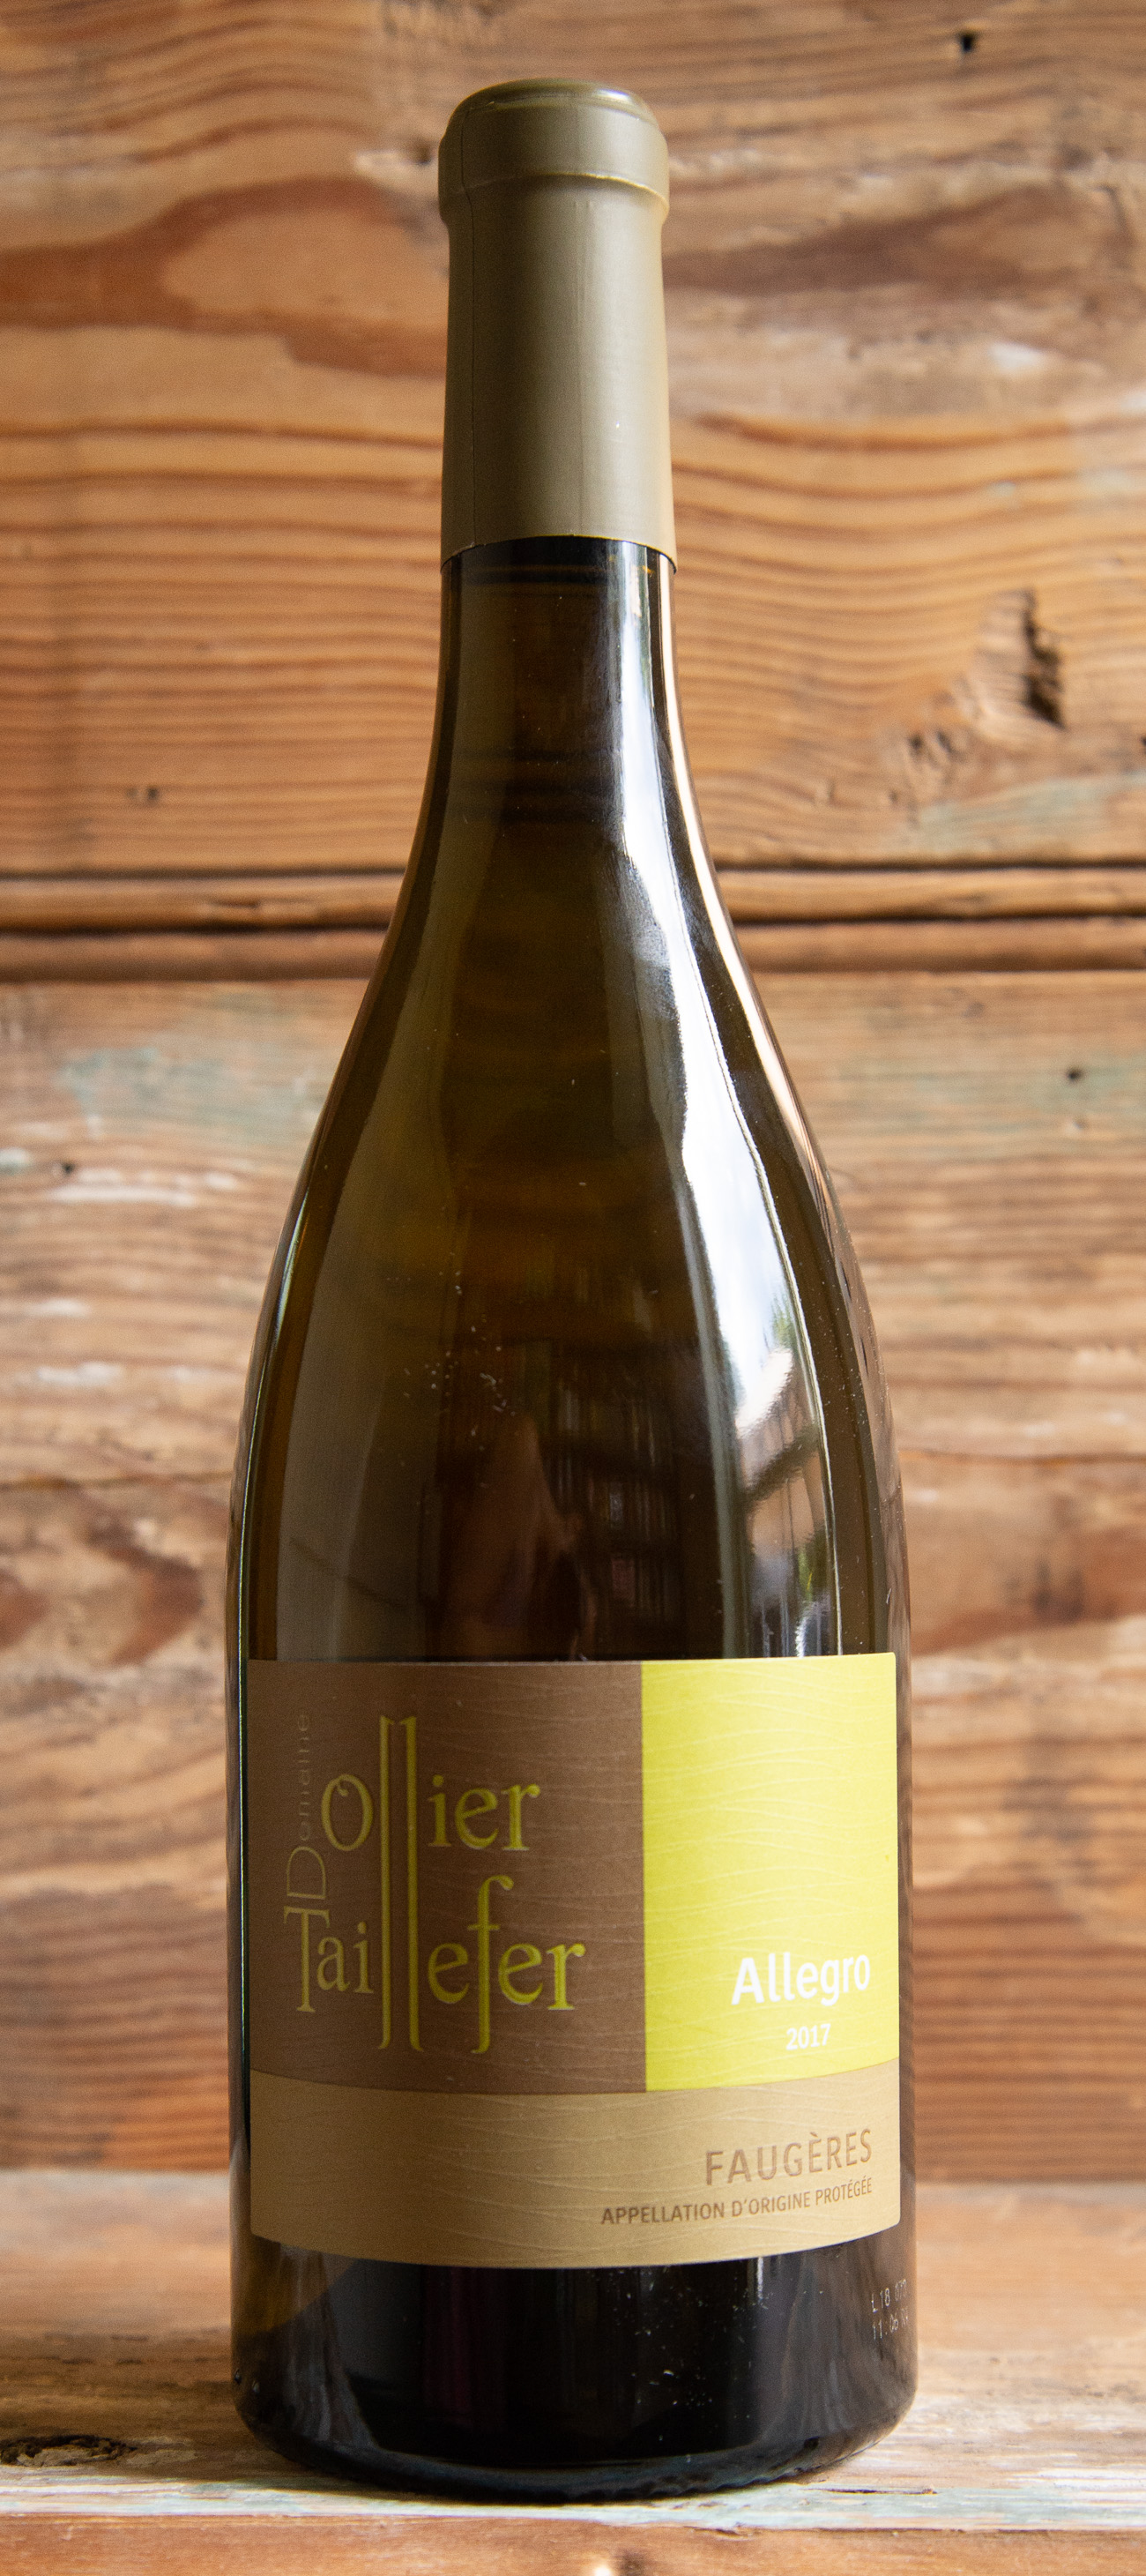 Domaine Ollier-Taillefer Faugères Allegro 2017 - Origin: FranceRetail: $28.95 | Sale: $26.35Only 2% of what Faugères produces today is white wine, making this a rare find. What sets Faugères apart amid the labyrinth of Languedoc appellations are two things: its geology of schist, and its high elevation. Relative to other Languedoc appellations, it's also small and rather stunningly compact -- being one of more than twenty appellations in Languedoc but owning less than 1% of the total vineyard surface. This wine pours with an intense lemon-yellow and straw color, shining with gold hues. Lively apricot and fresh peach aromas welcome you into the glass with an elderflower floral edge and a wealth of honey. The palate is round and oily, dry with a good crispy acidity, and underlining zesty lemon flavors. Orange peel and apple complete the profile of this lively fruity white, as well as bursts of ginger and fresh hazelnut.50% Roussanne, 50% Vermentino.Organic.